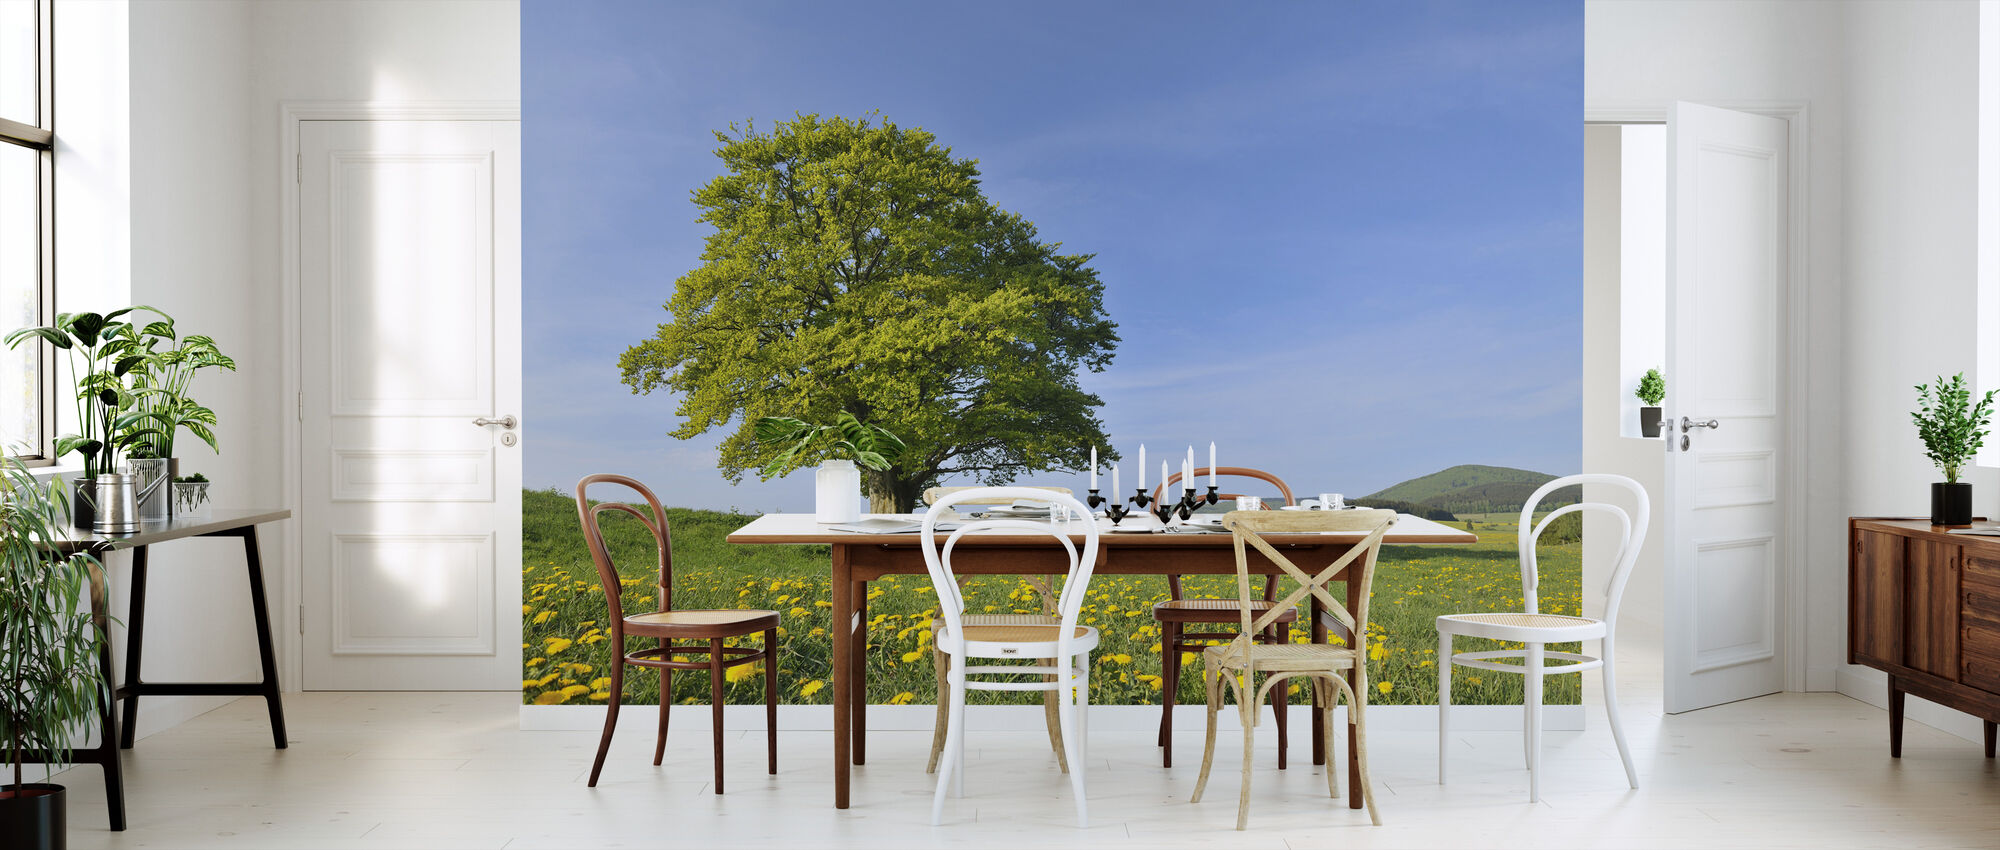 Lone Beech Tree - Wallpaper - Kitchen